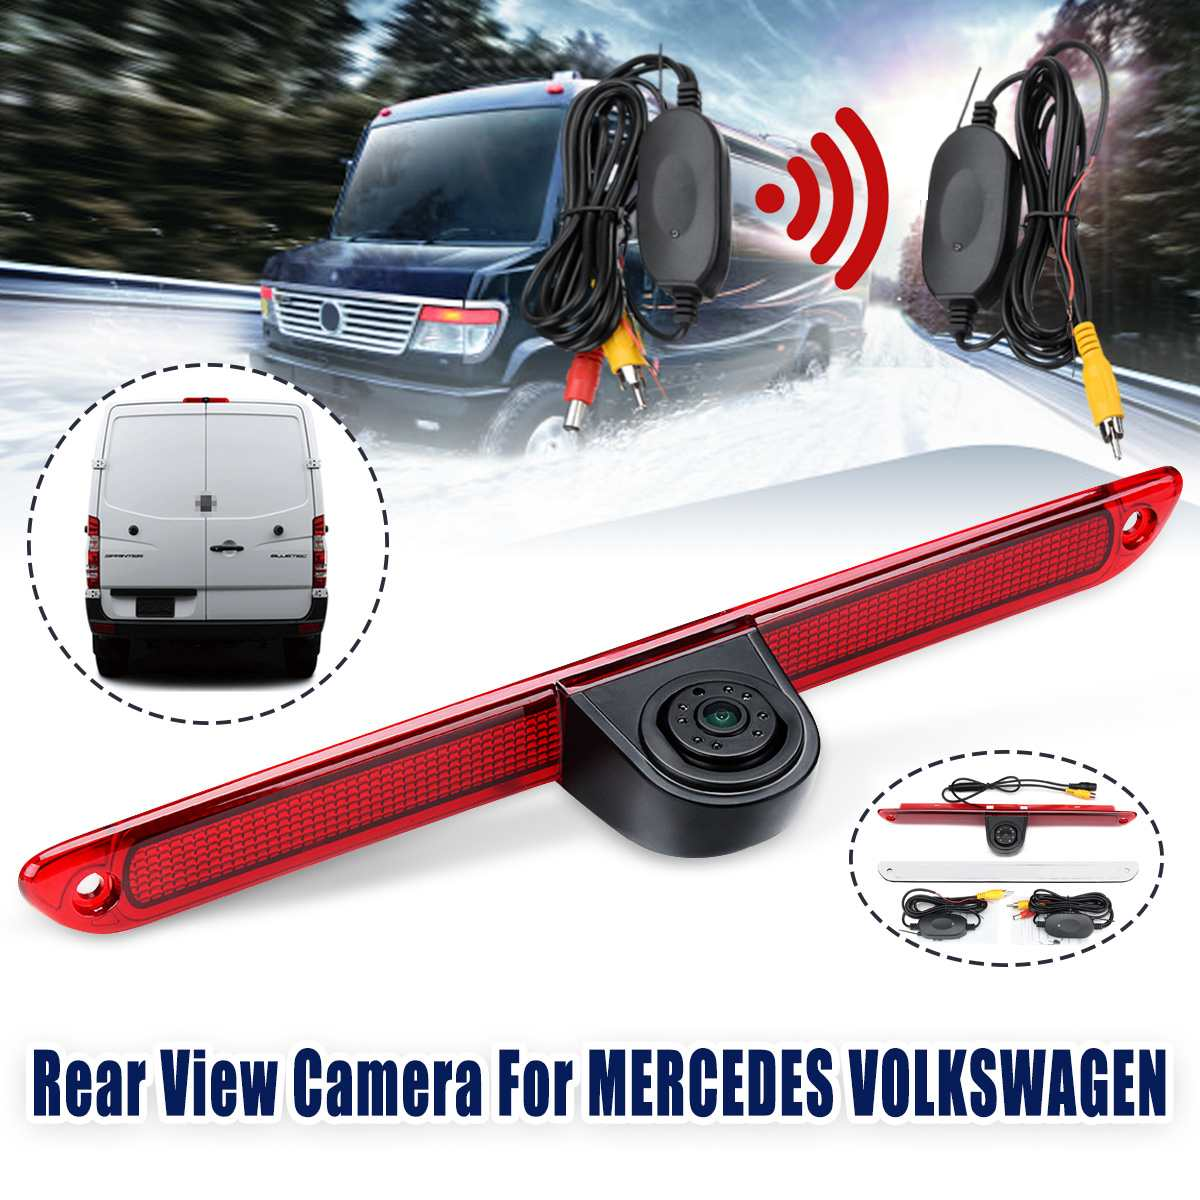 Wireless CCD HD Auto Car Rear View Camera Reverse Parking Night Vision 3rd Brake Light For VW Crafter Mercedes Sprinter